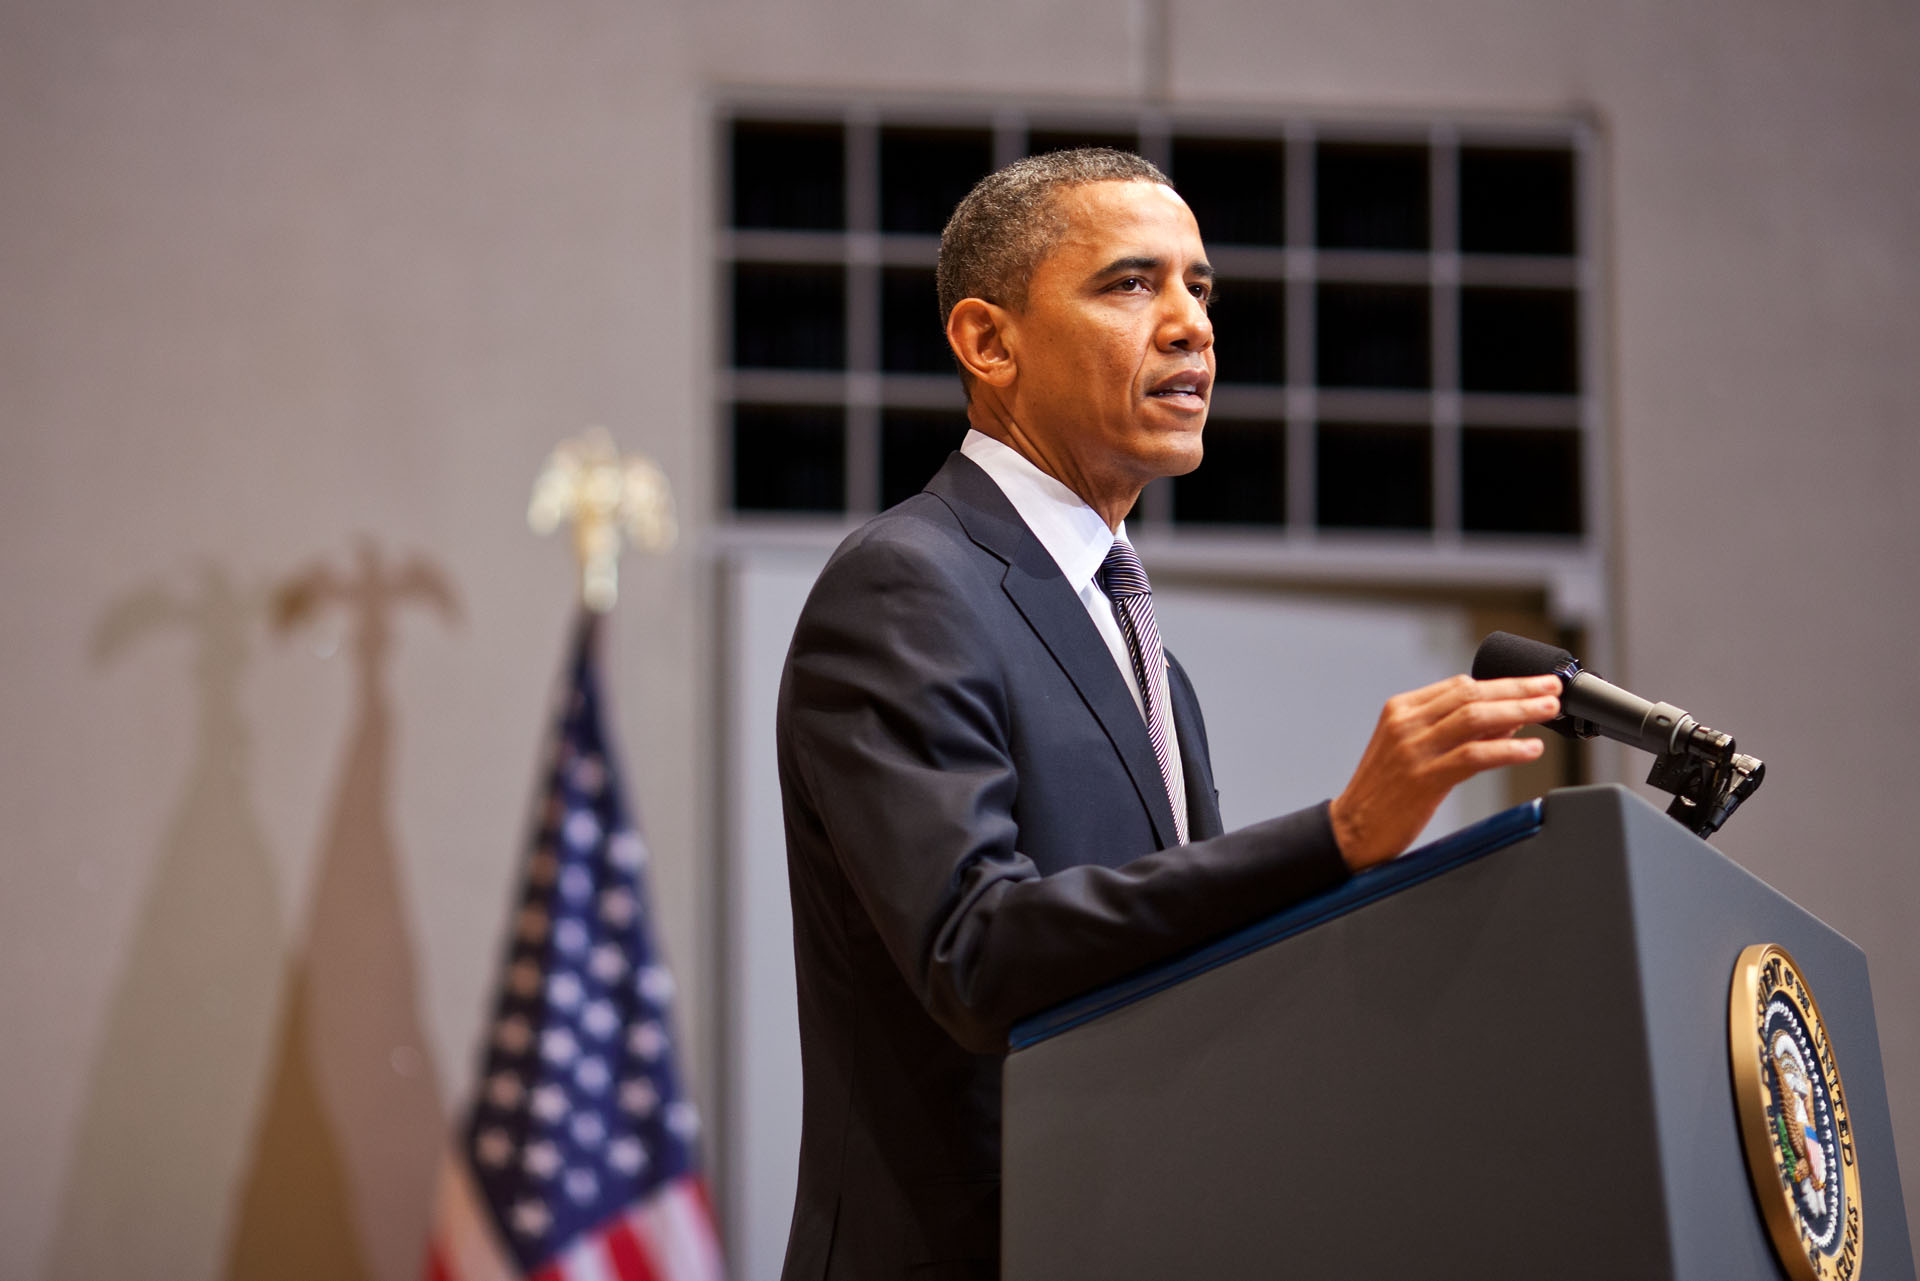 President Barack Obama Delivers Remarks at the U.S. Holocaust Memorial Museum